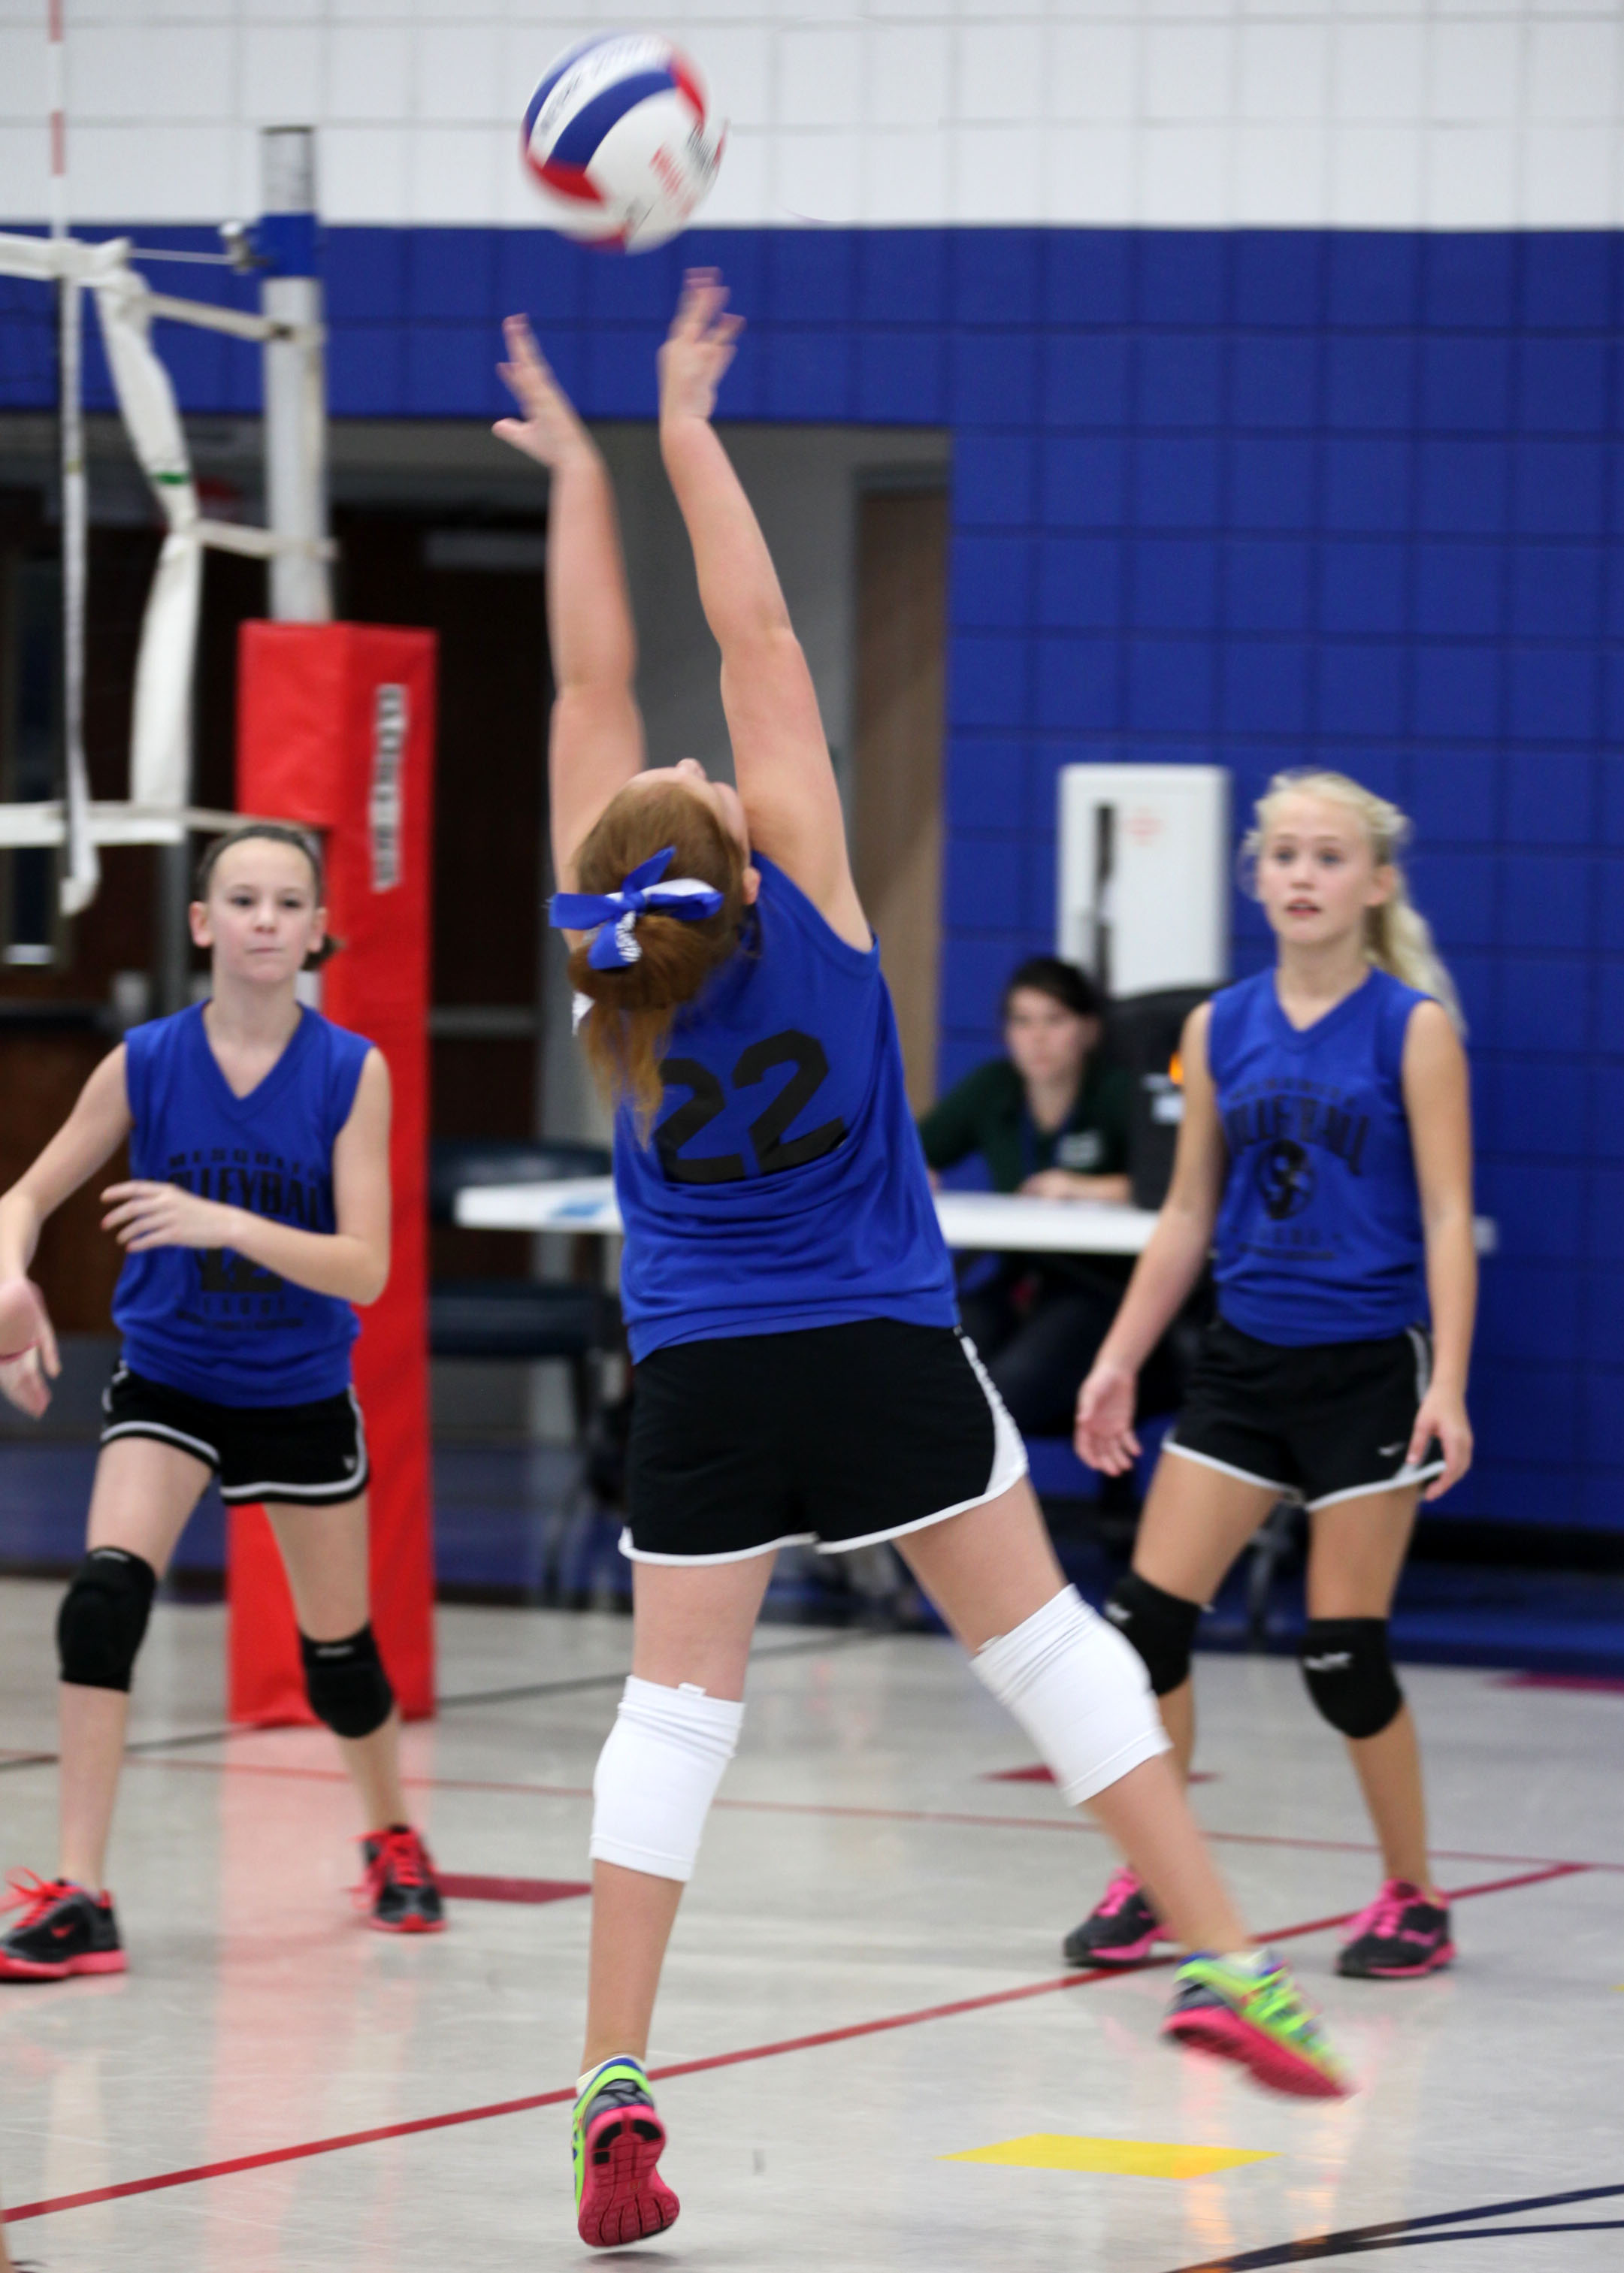 Youth Volleyball5